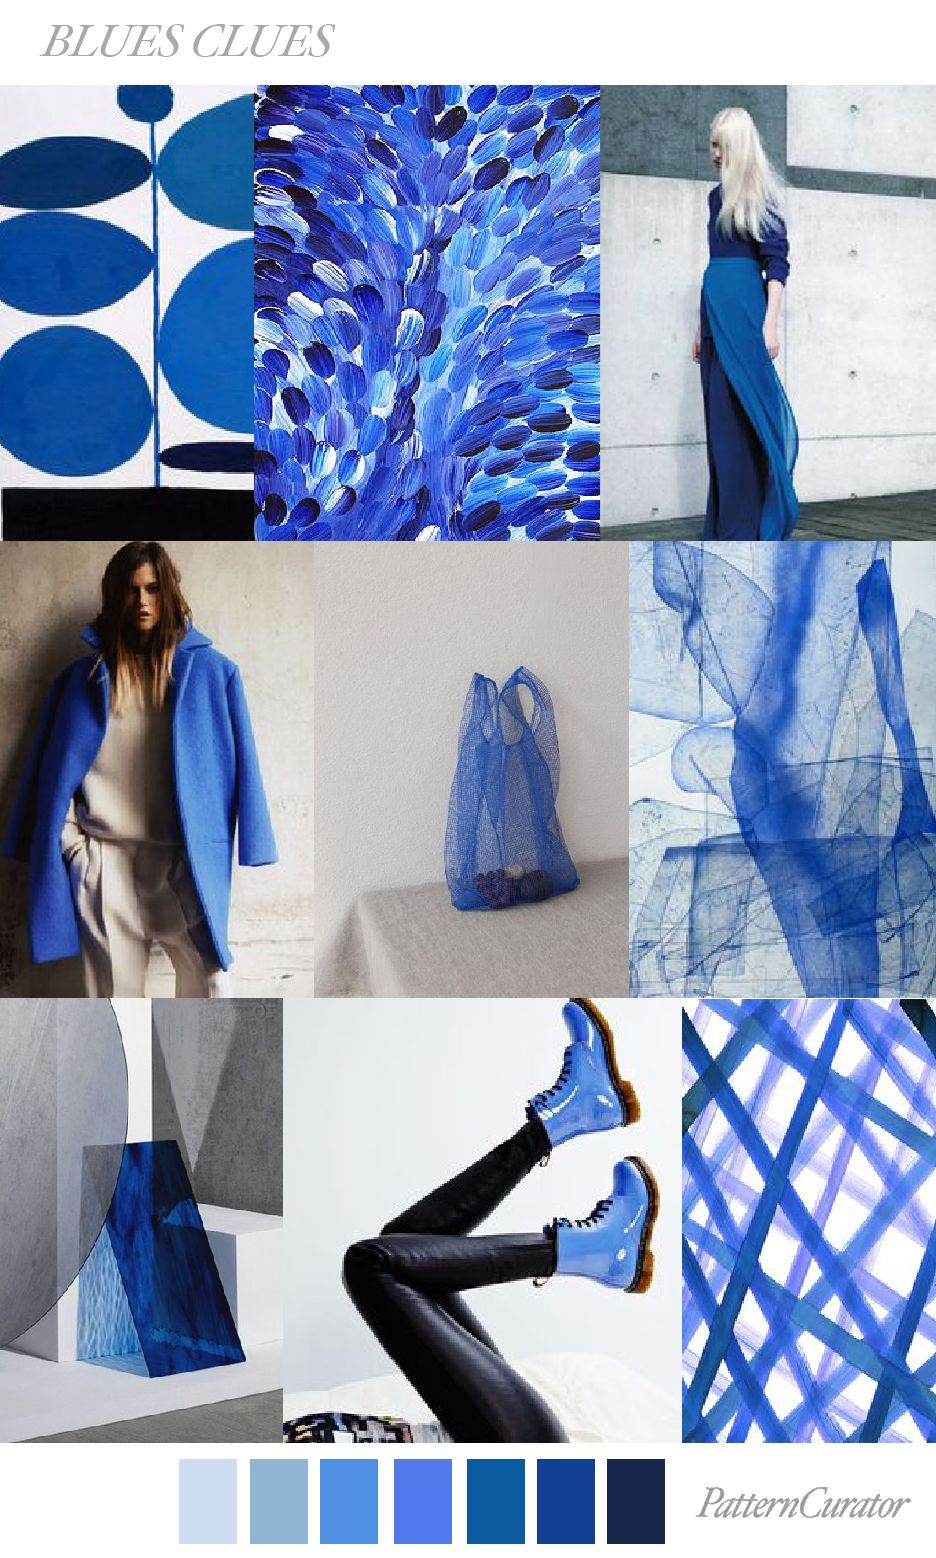 BLUES CLUES by PatternCurator